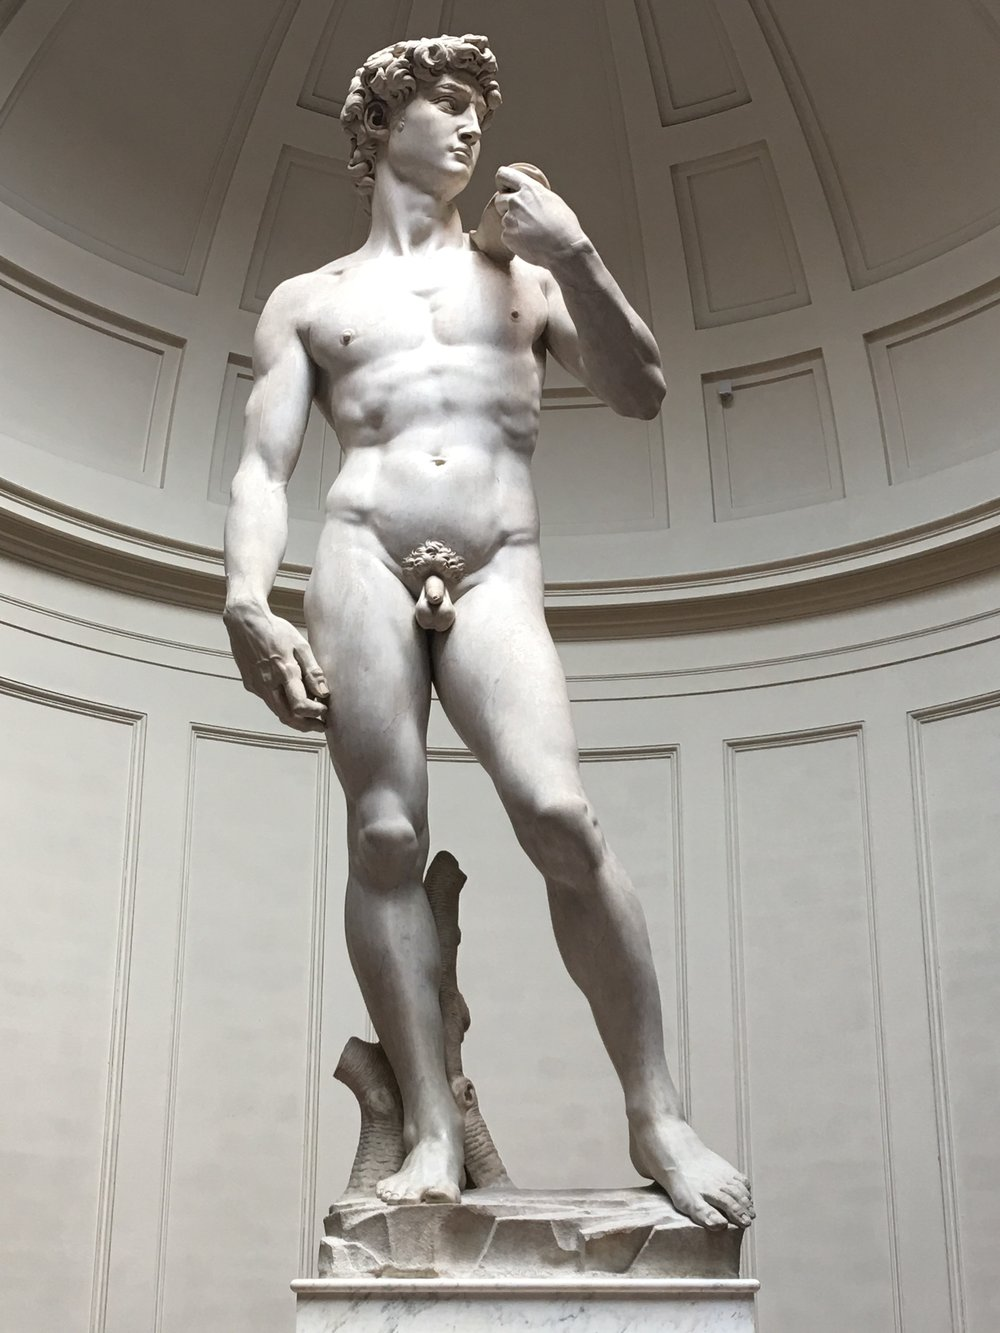 Michelangelo's David at the Galleria dell'Accademia. Photo by Kate Lenahan.